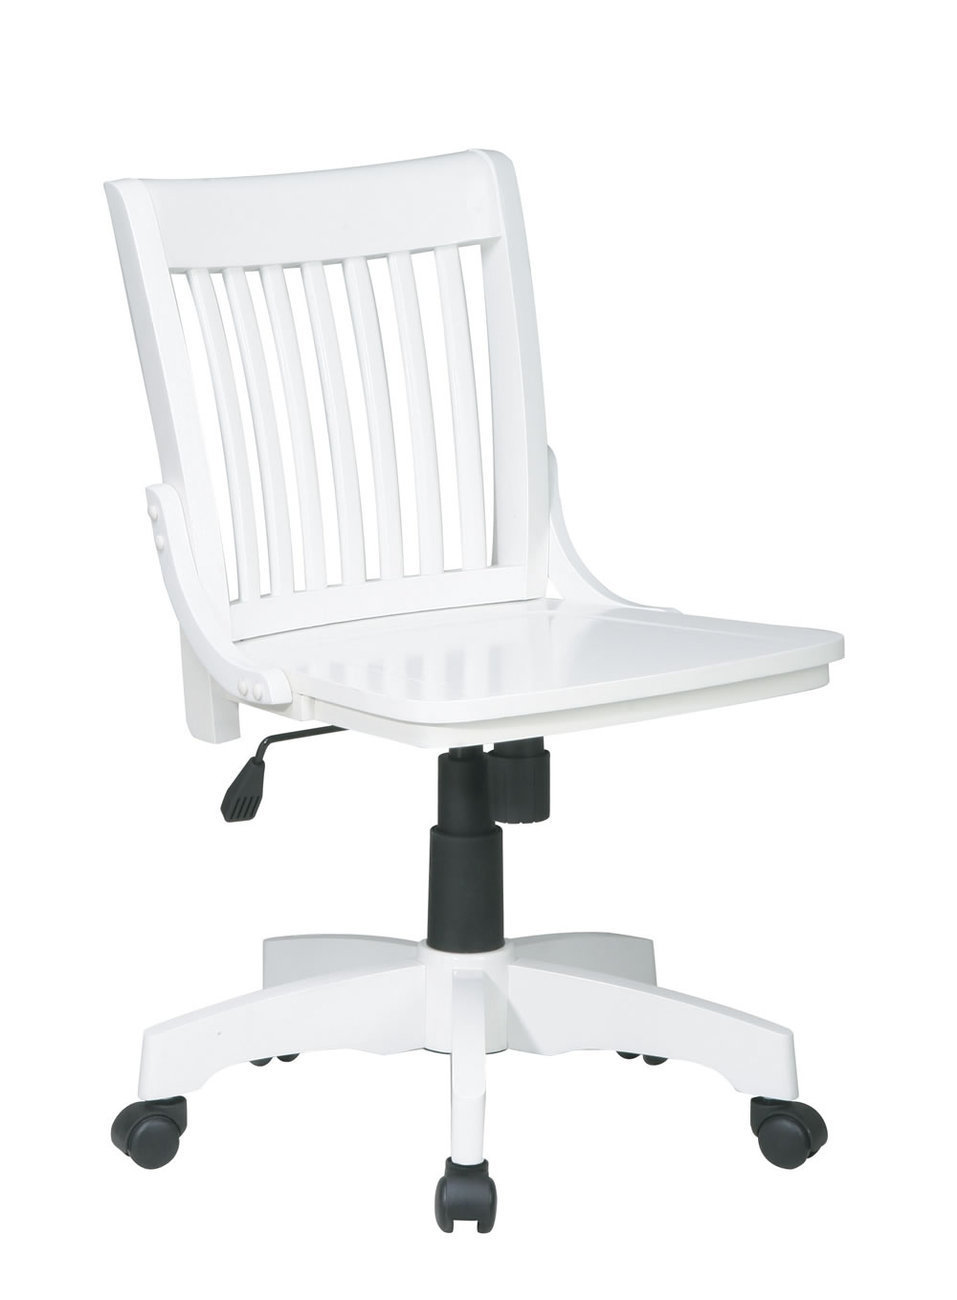 white mission style wood chair armless banker swivel desk office chair